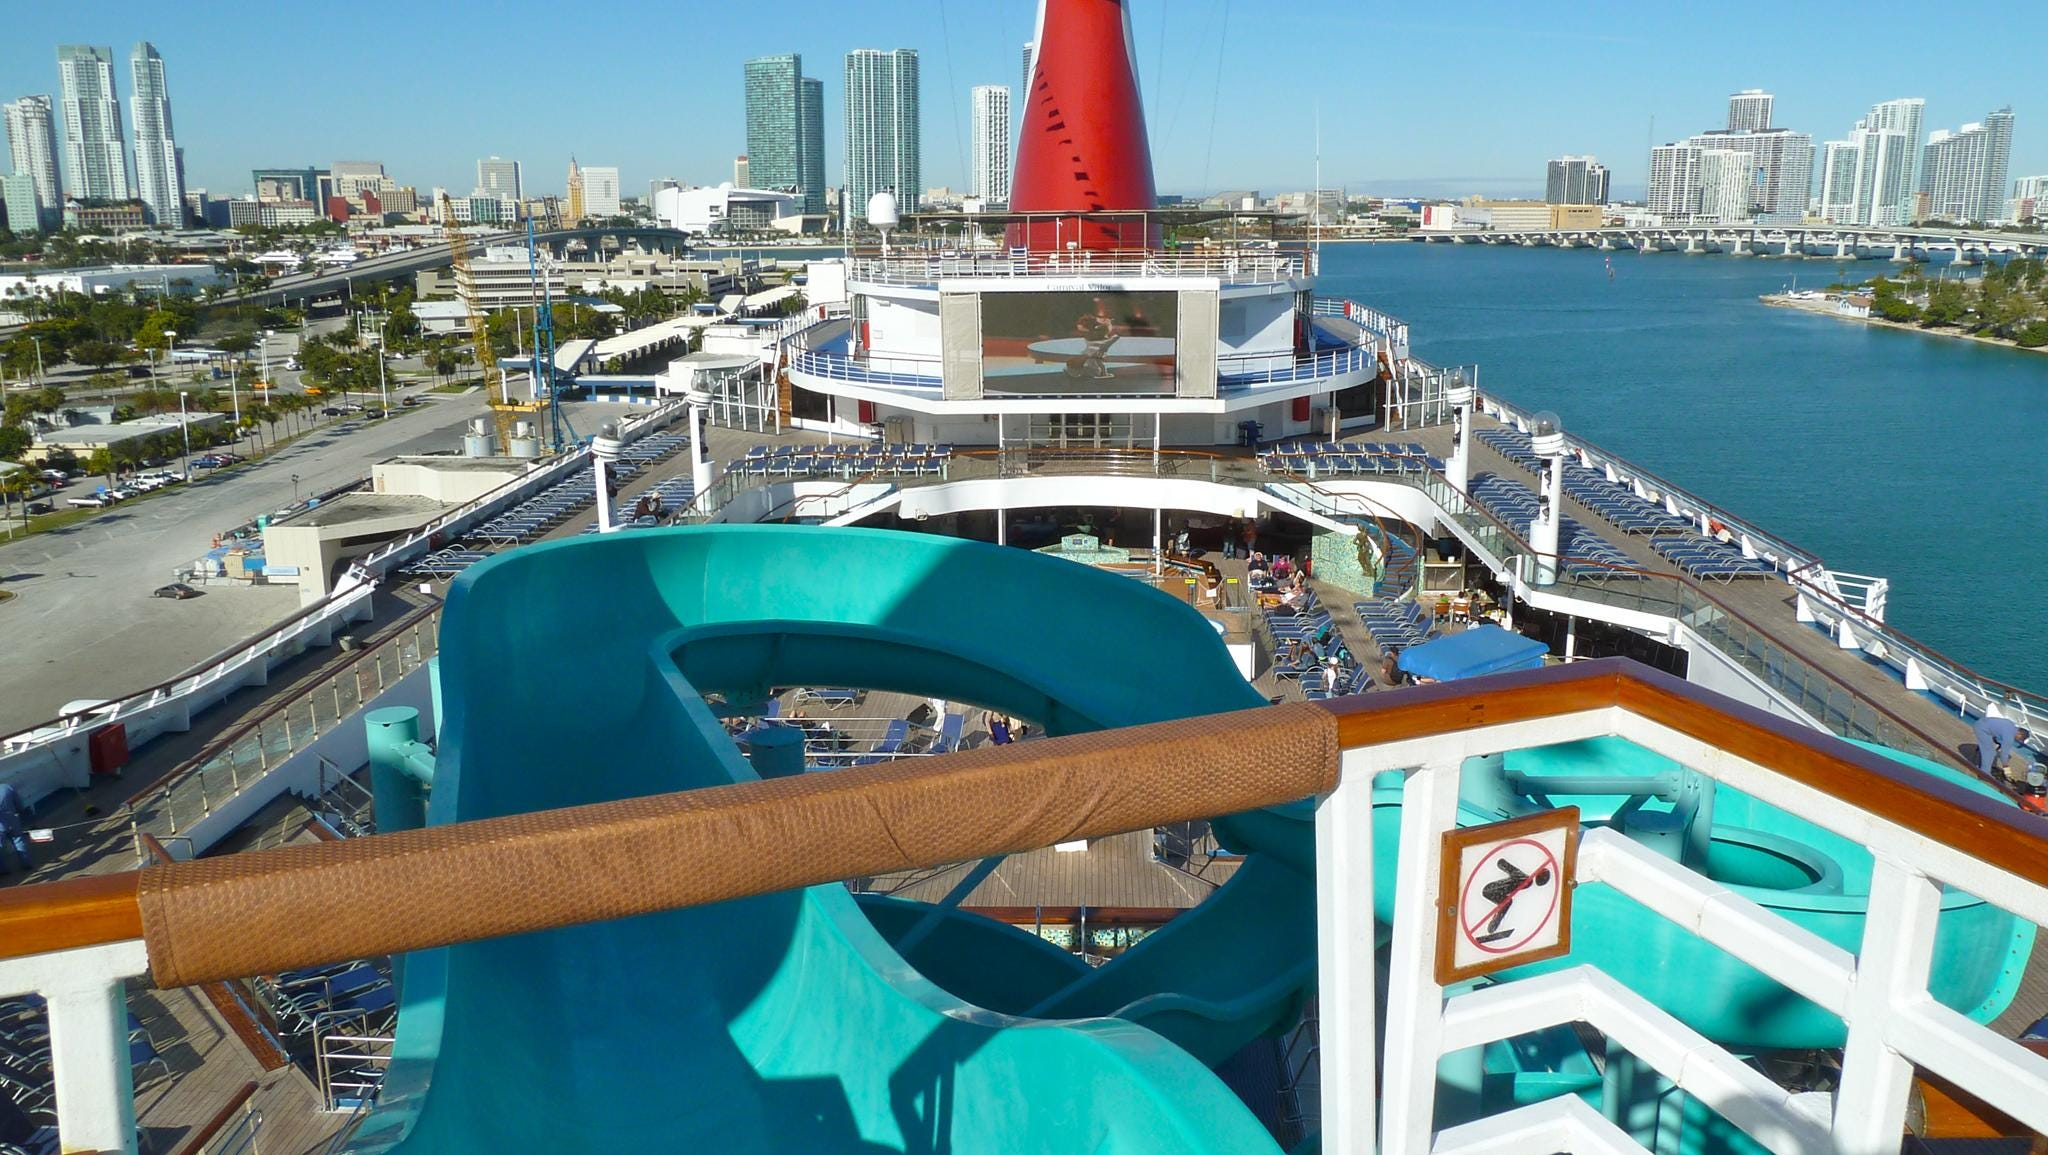 Accessed via Deck 14, the 214-foot-long Twister Water Slide tops the ship with a vertiginous series of loops down to the main pool area.